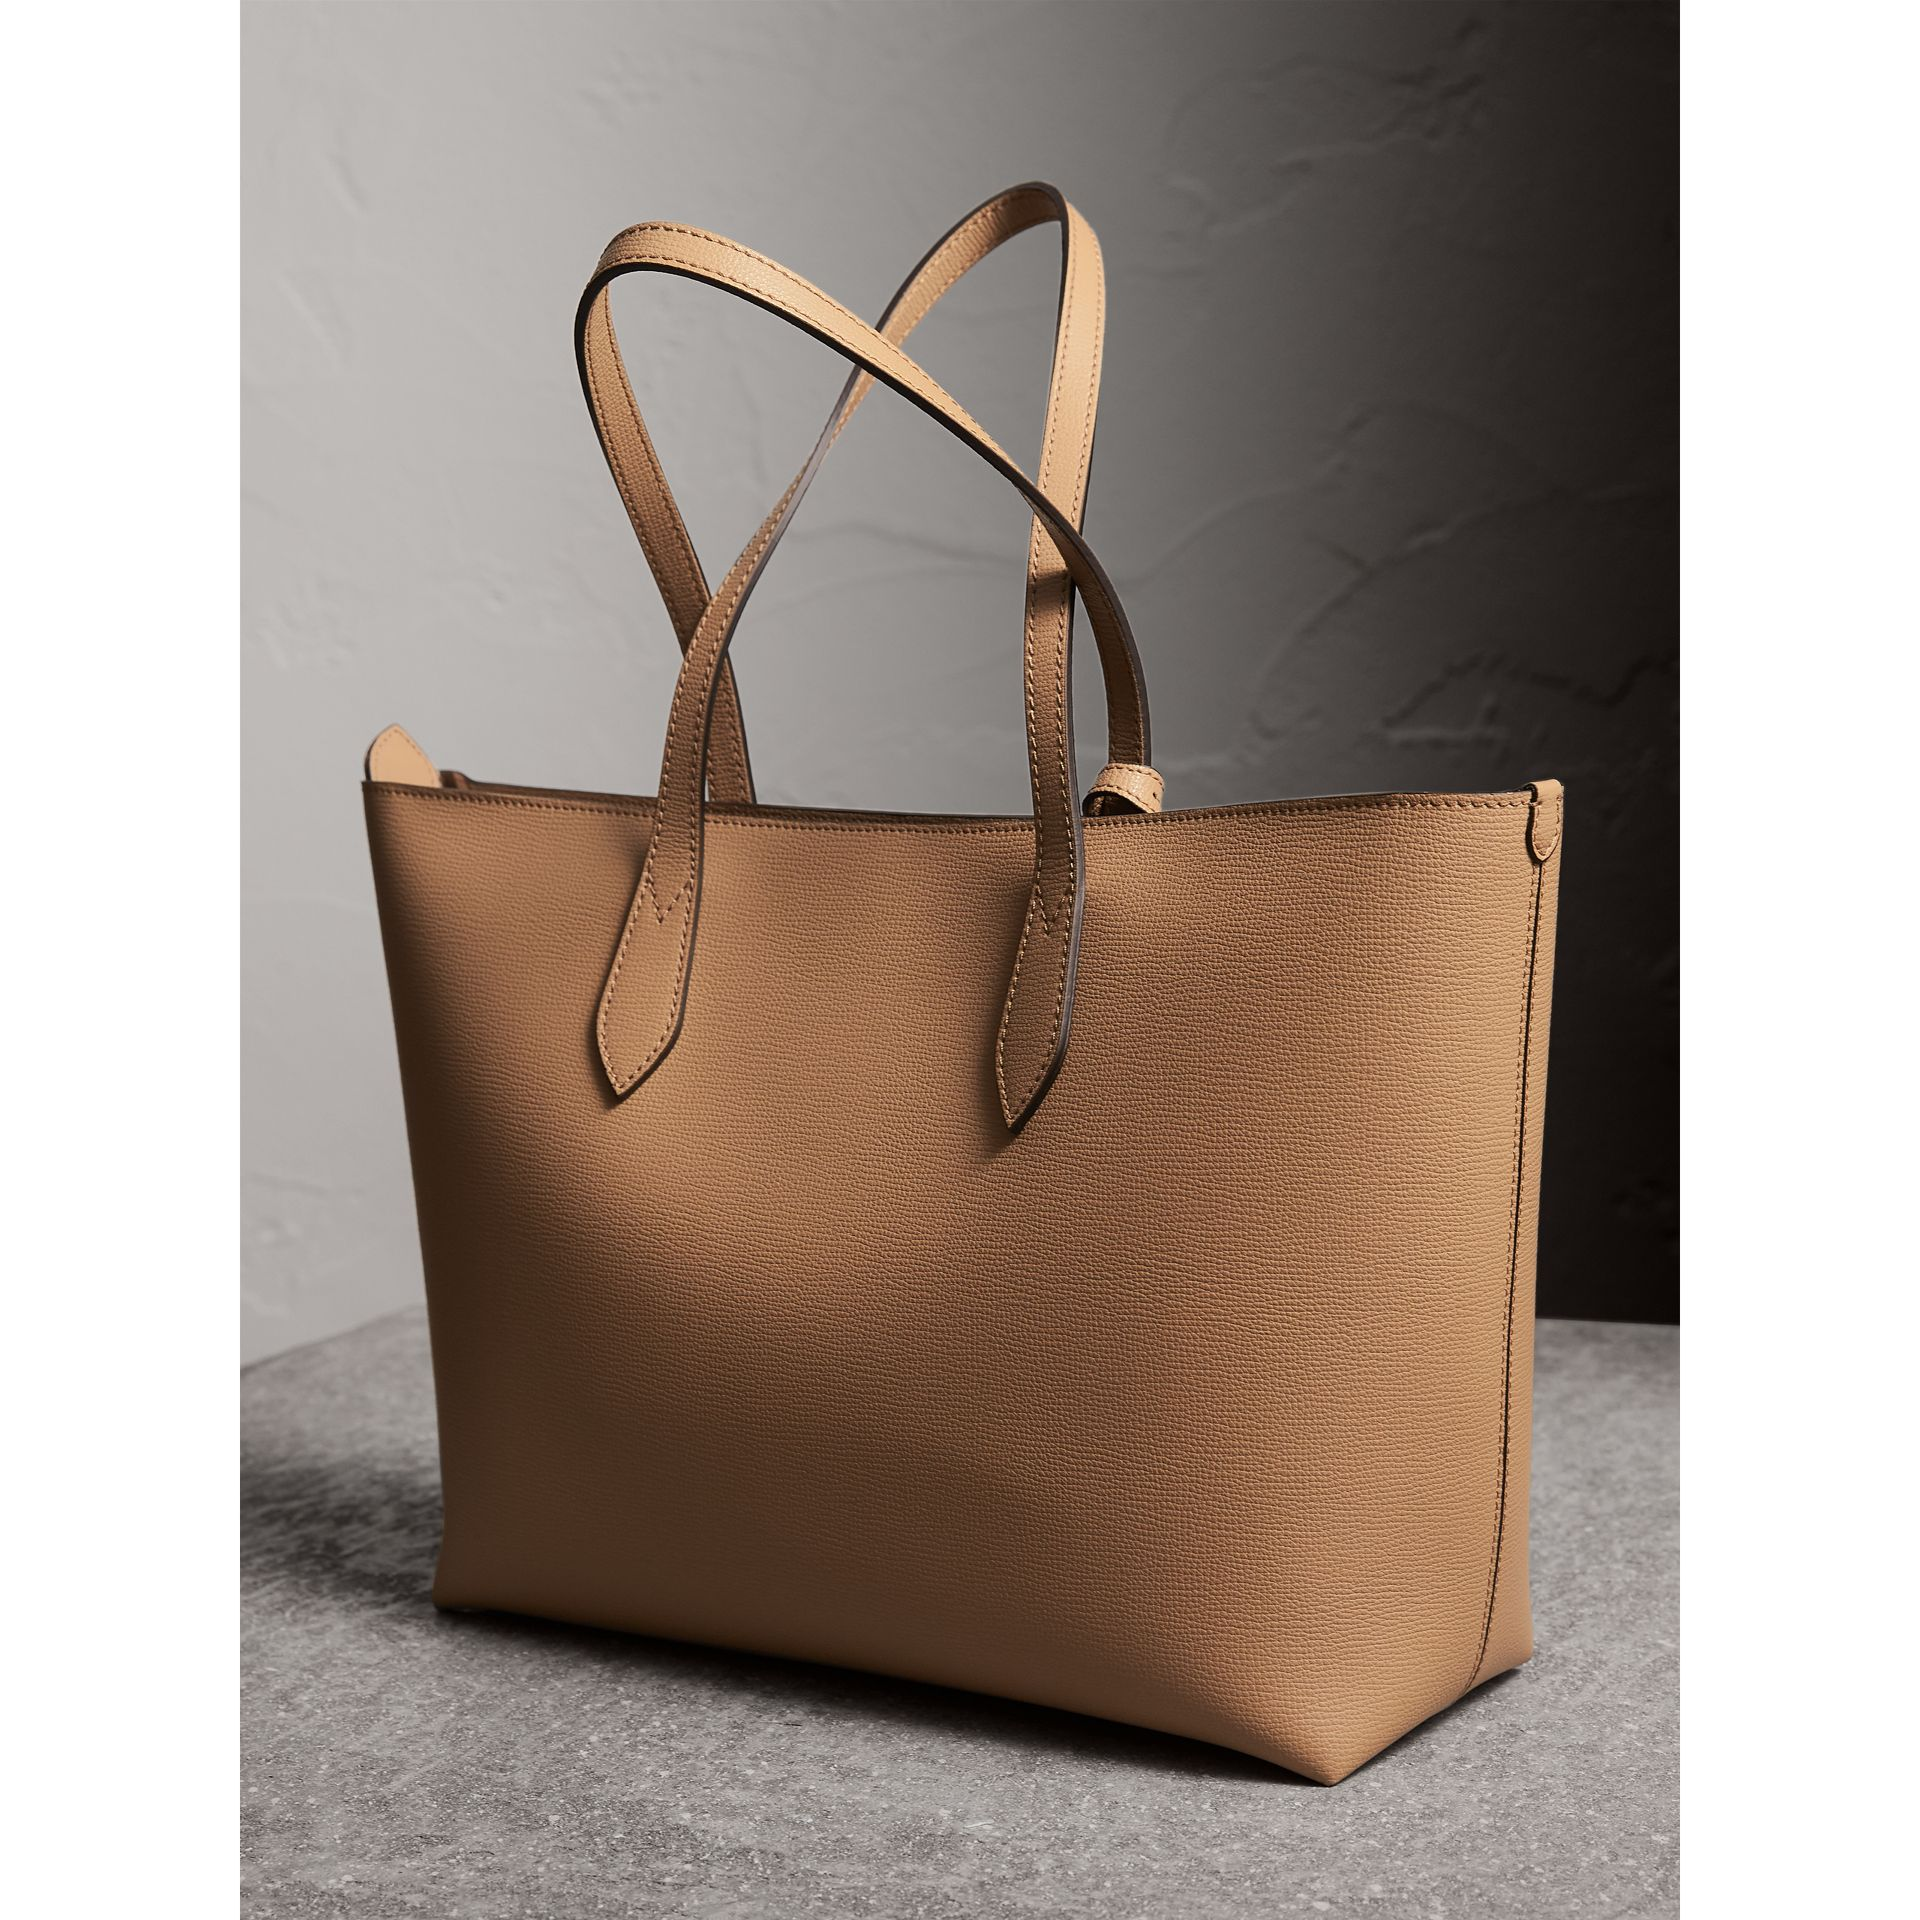 Medium Coated Leather Tote in Mid Camel - Women | Burberry - gallery image 3